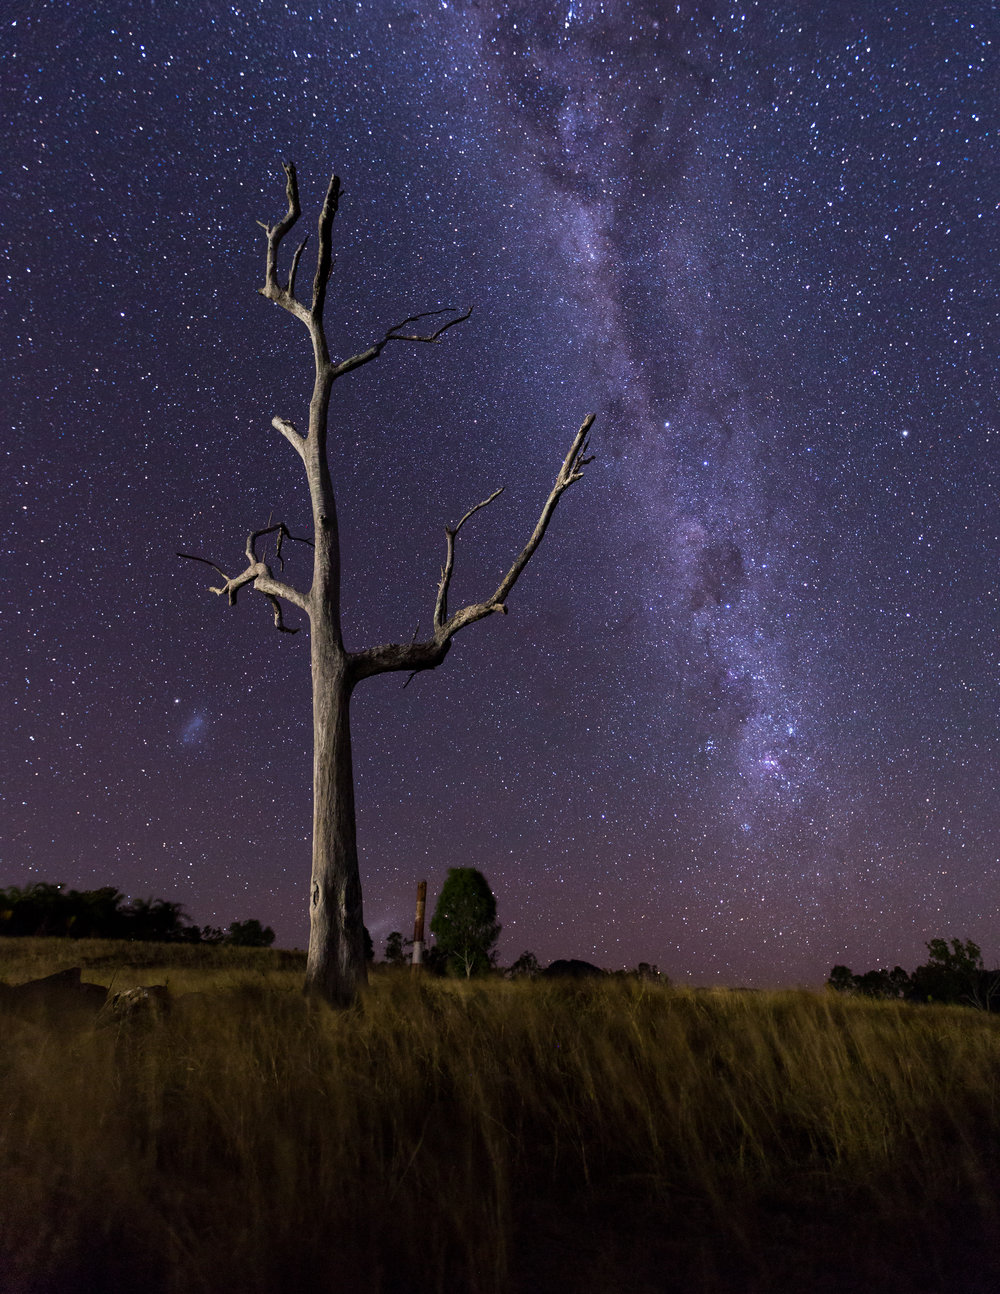 Lake Moogerah - Camping trip and first time photographing the milky way.